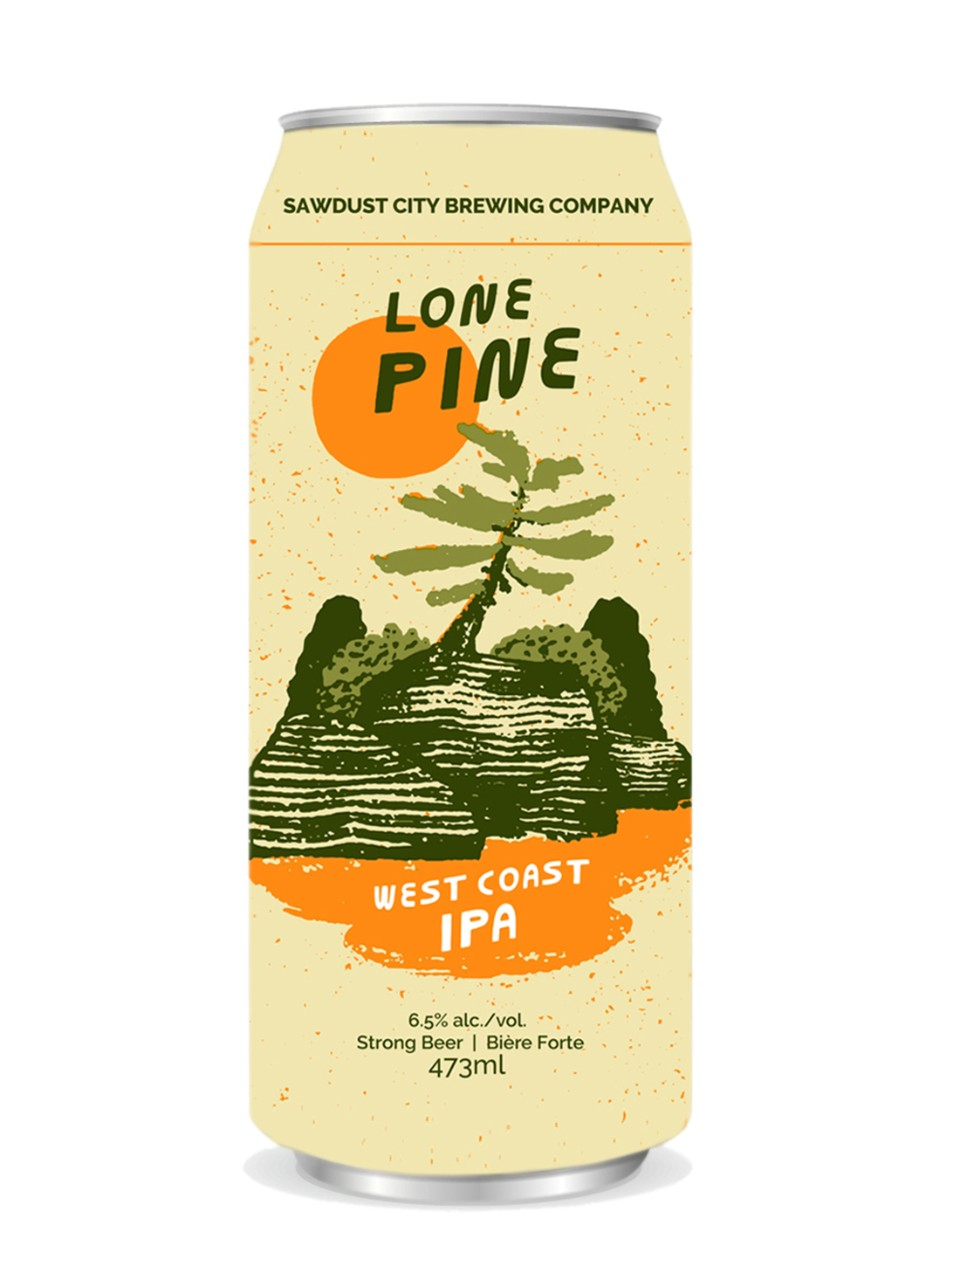 Sawdust City Lone Pine IPA from LCBO